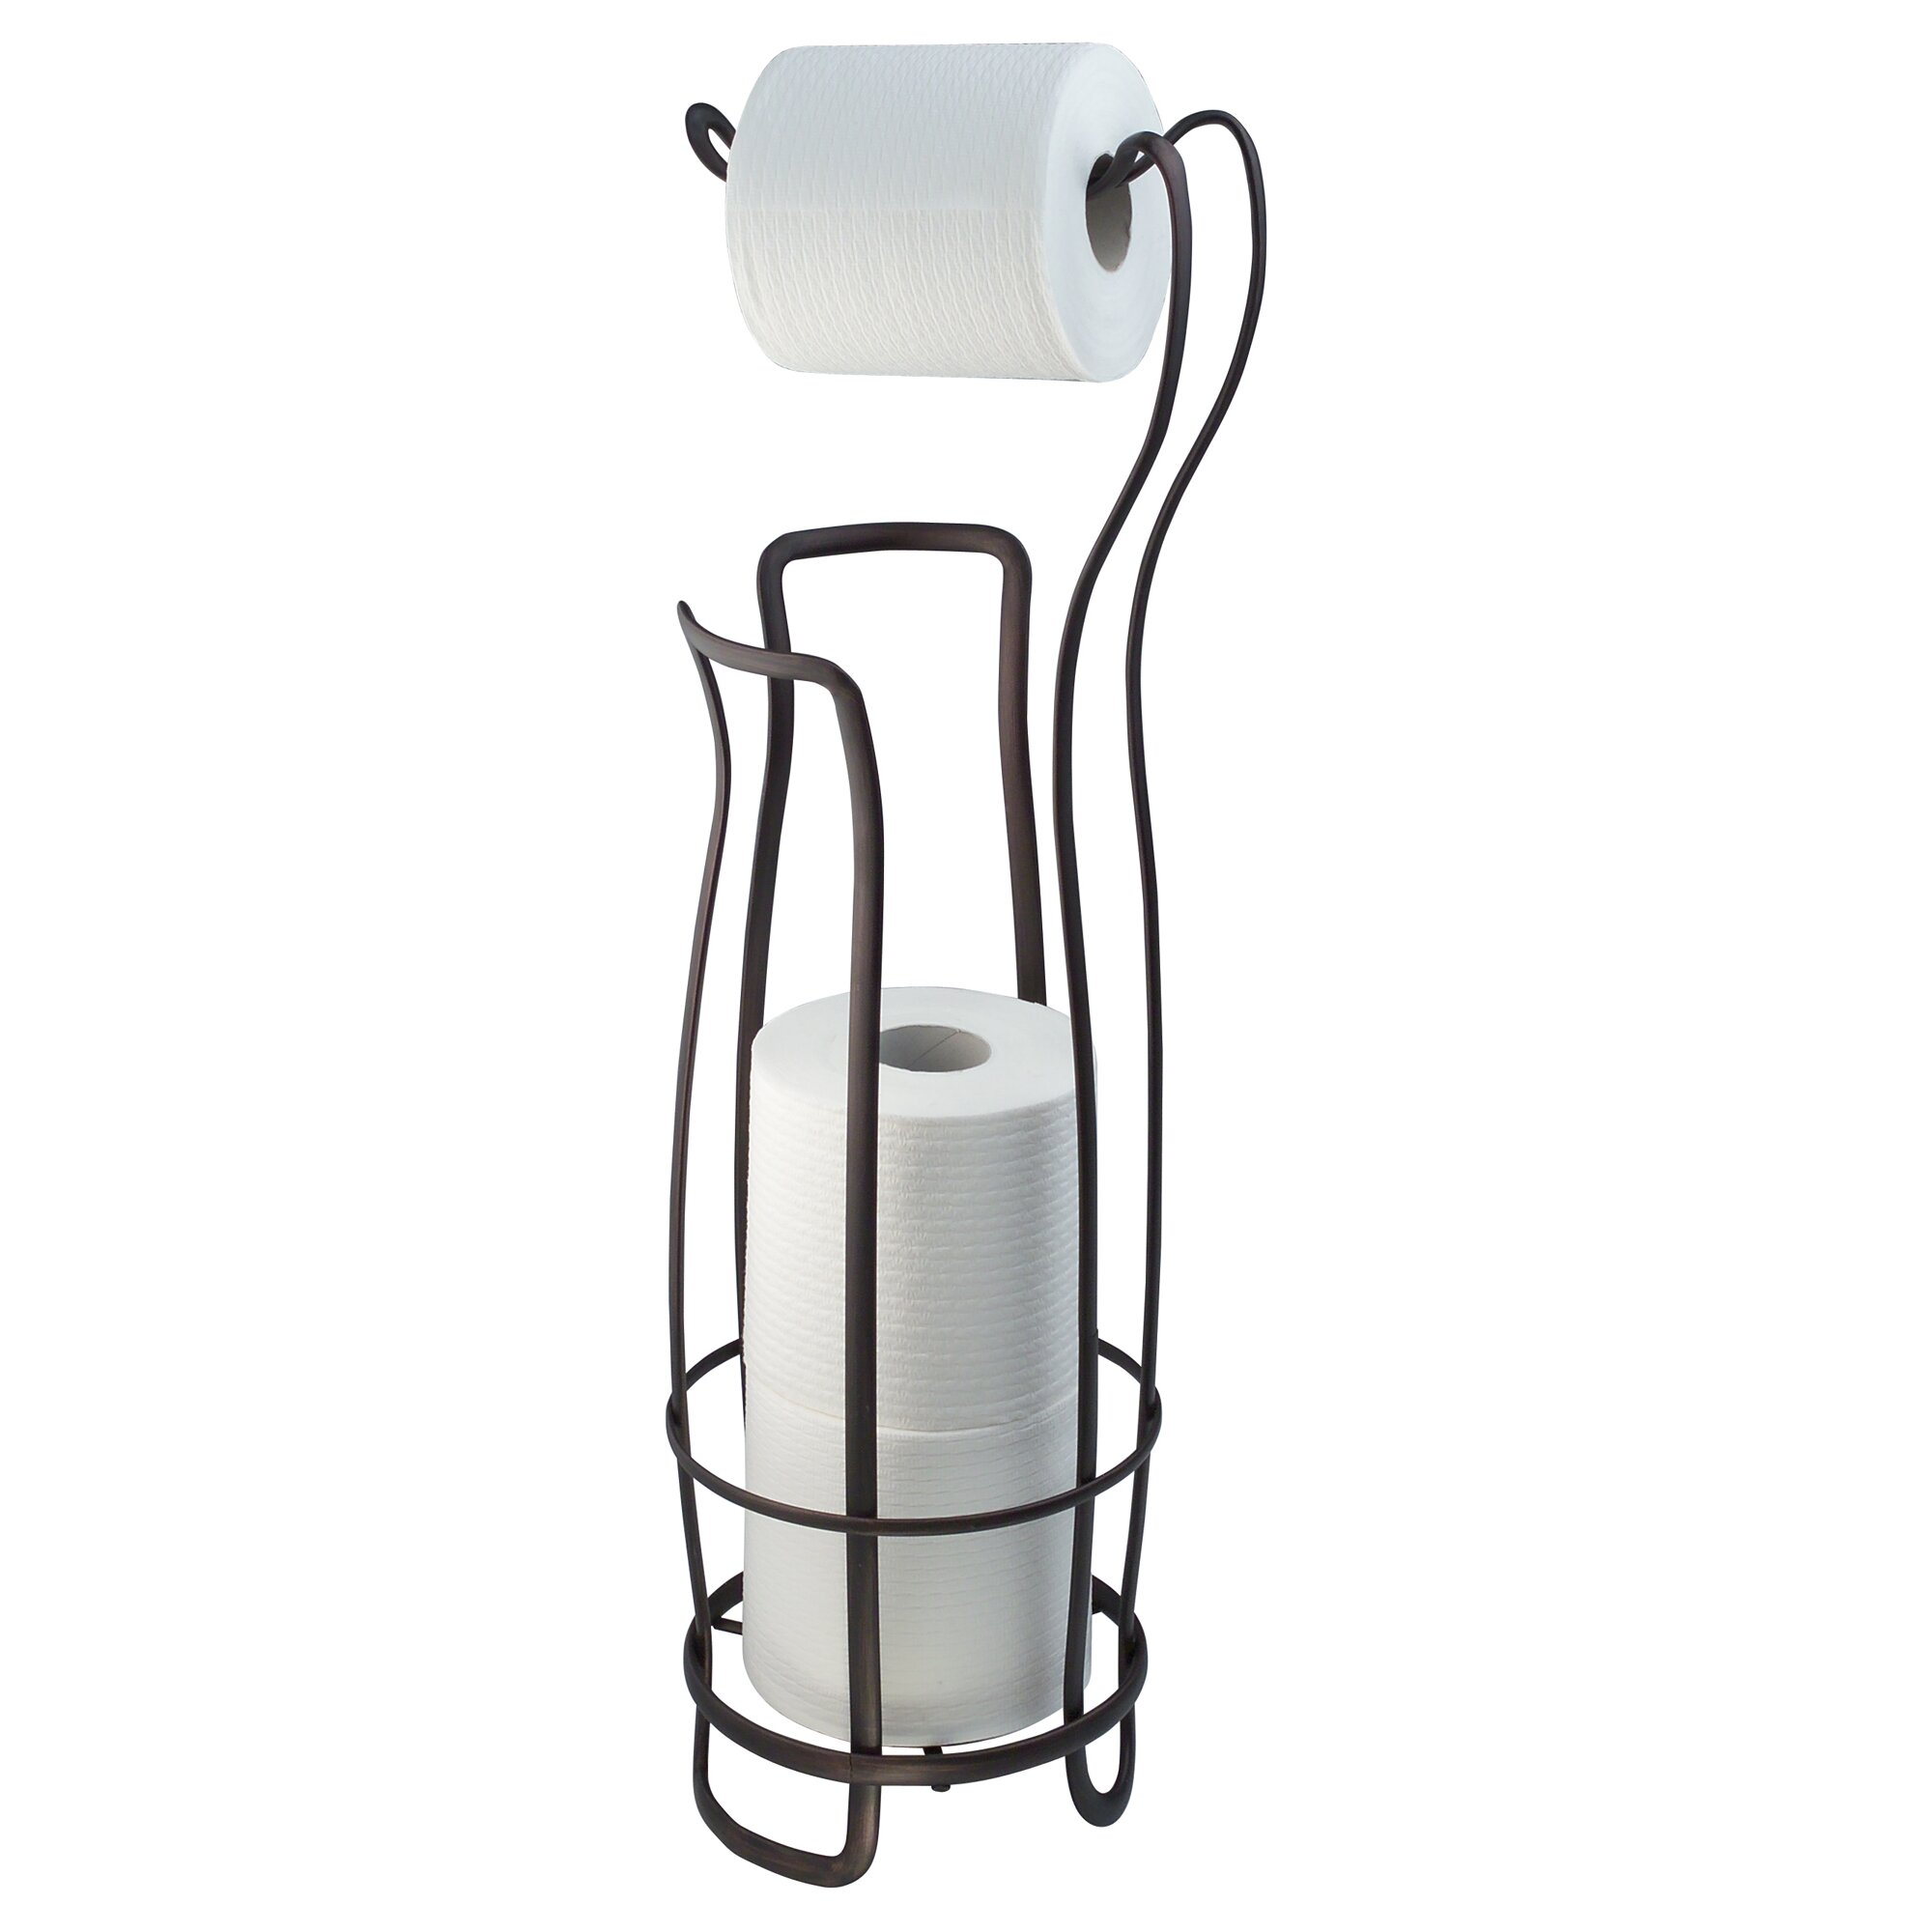 Interdesign toilet paper holder and reserve reviews wayfair - Interdesign toilet paper holder ...